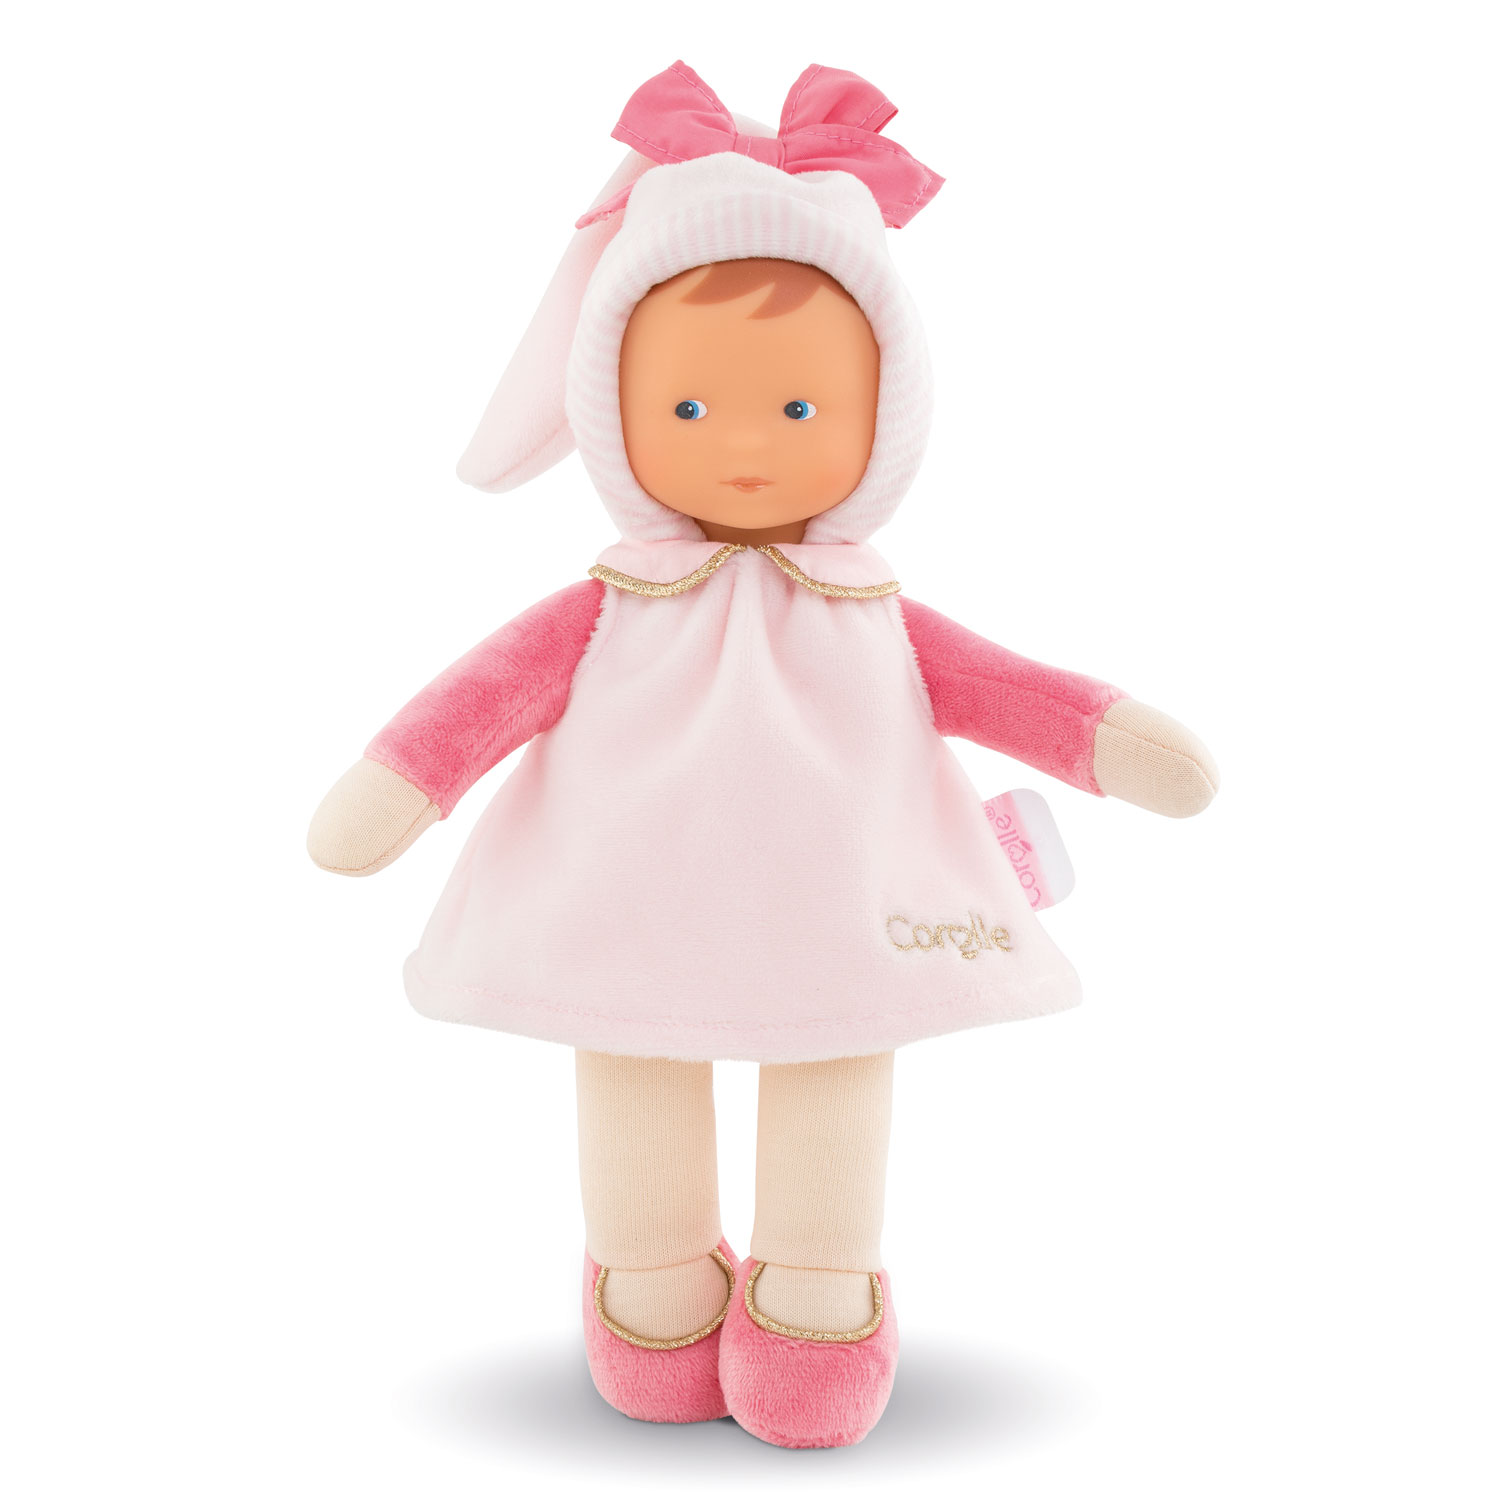 Mon Doudou Corolle Sweet Dreams - Miss, 25cm